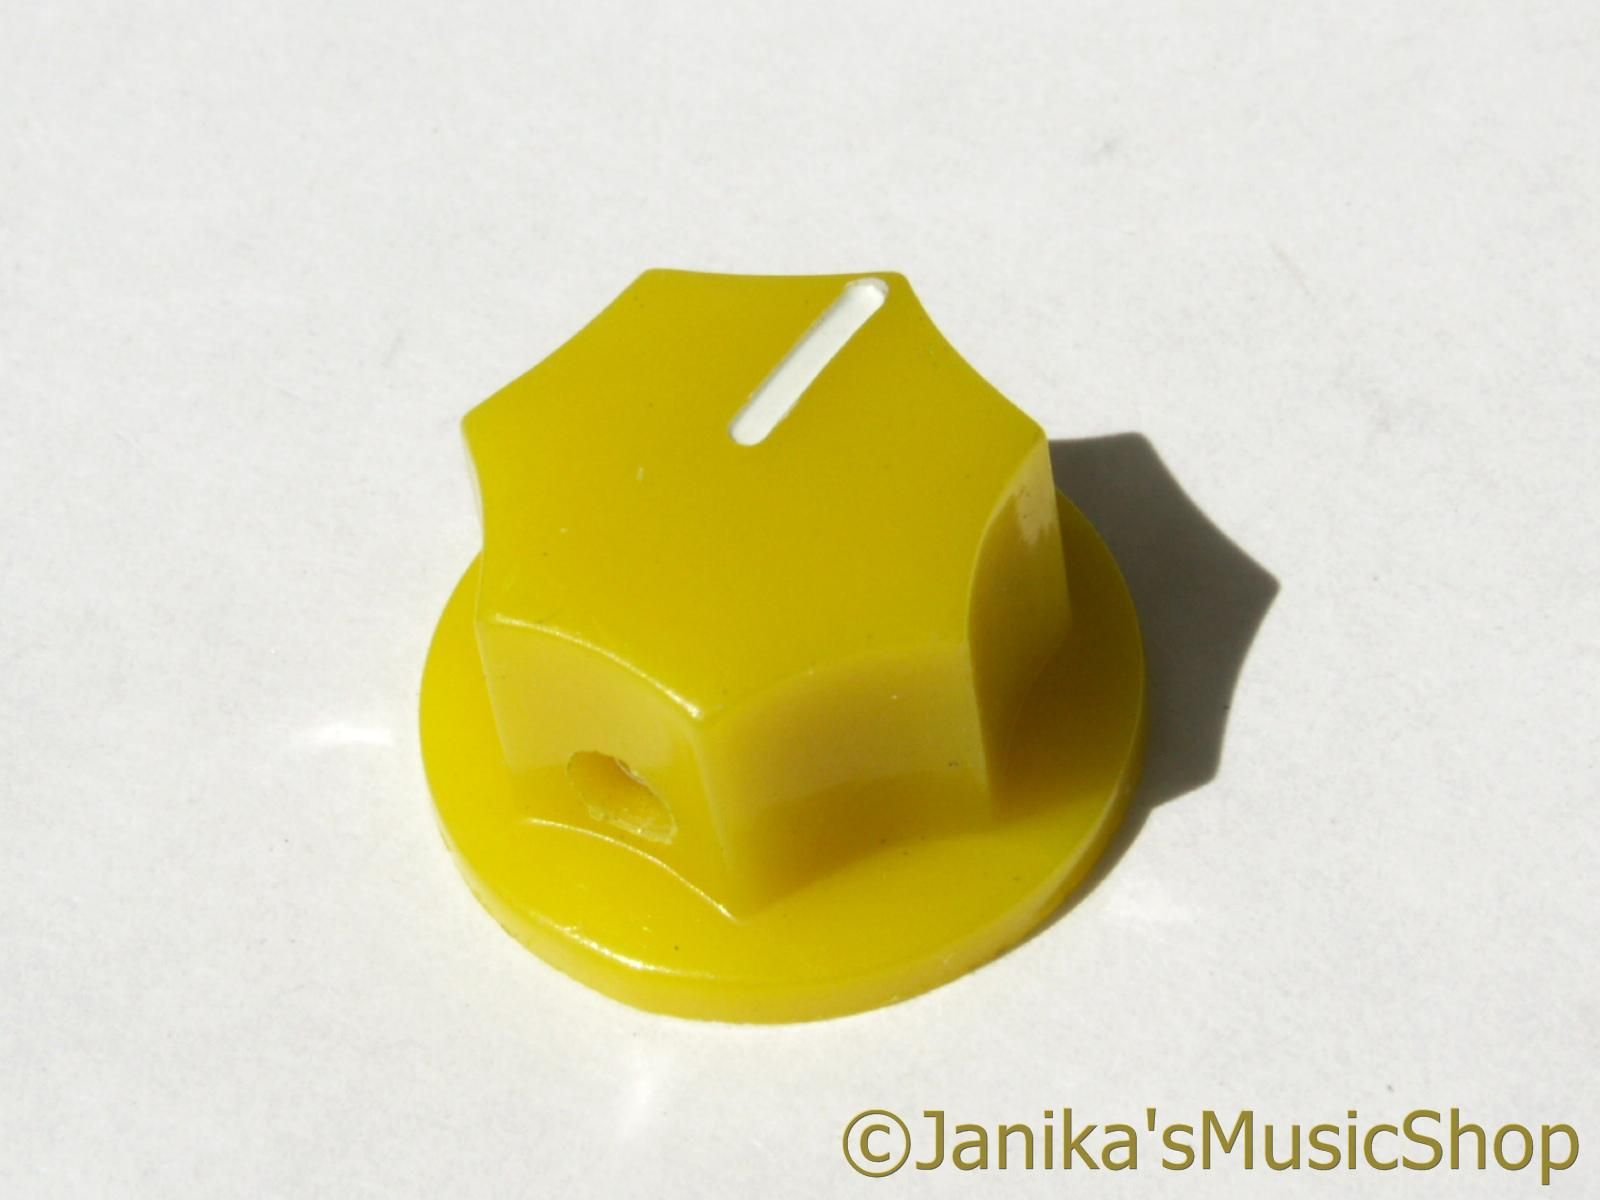 20mm yellow potentiometer knob jazz bass guitar volume amplifier pot with screw